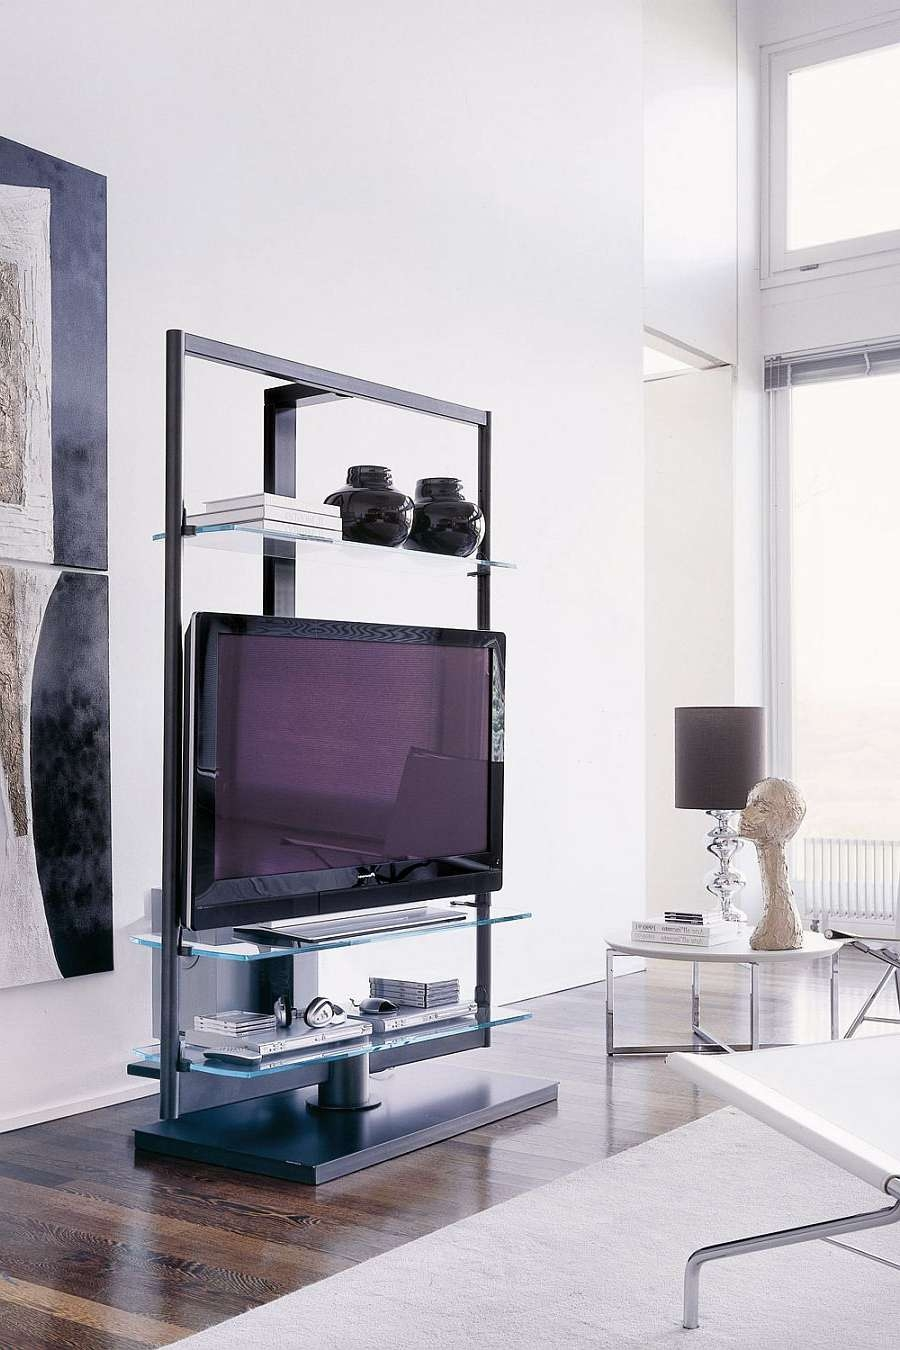 Captivating Tv Stand Small Space 47 On Small Home Remodel Ideas Intended For Tv Stands For Small Rooms (View 8 of 15)